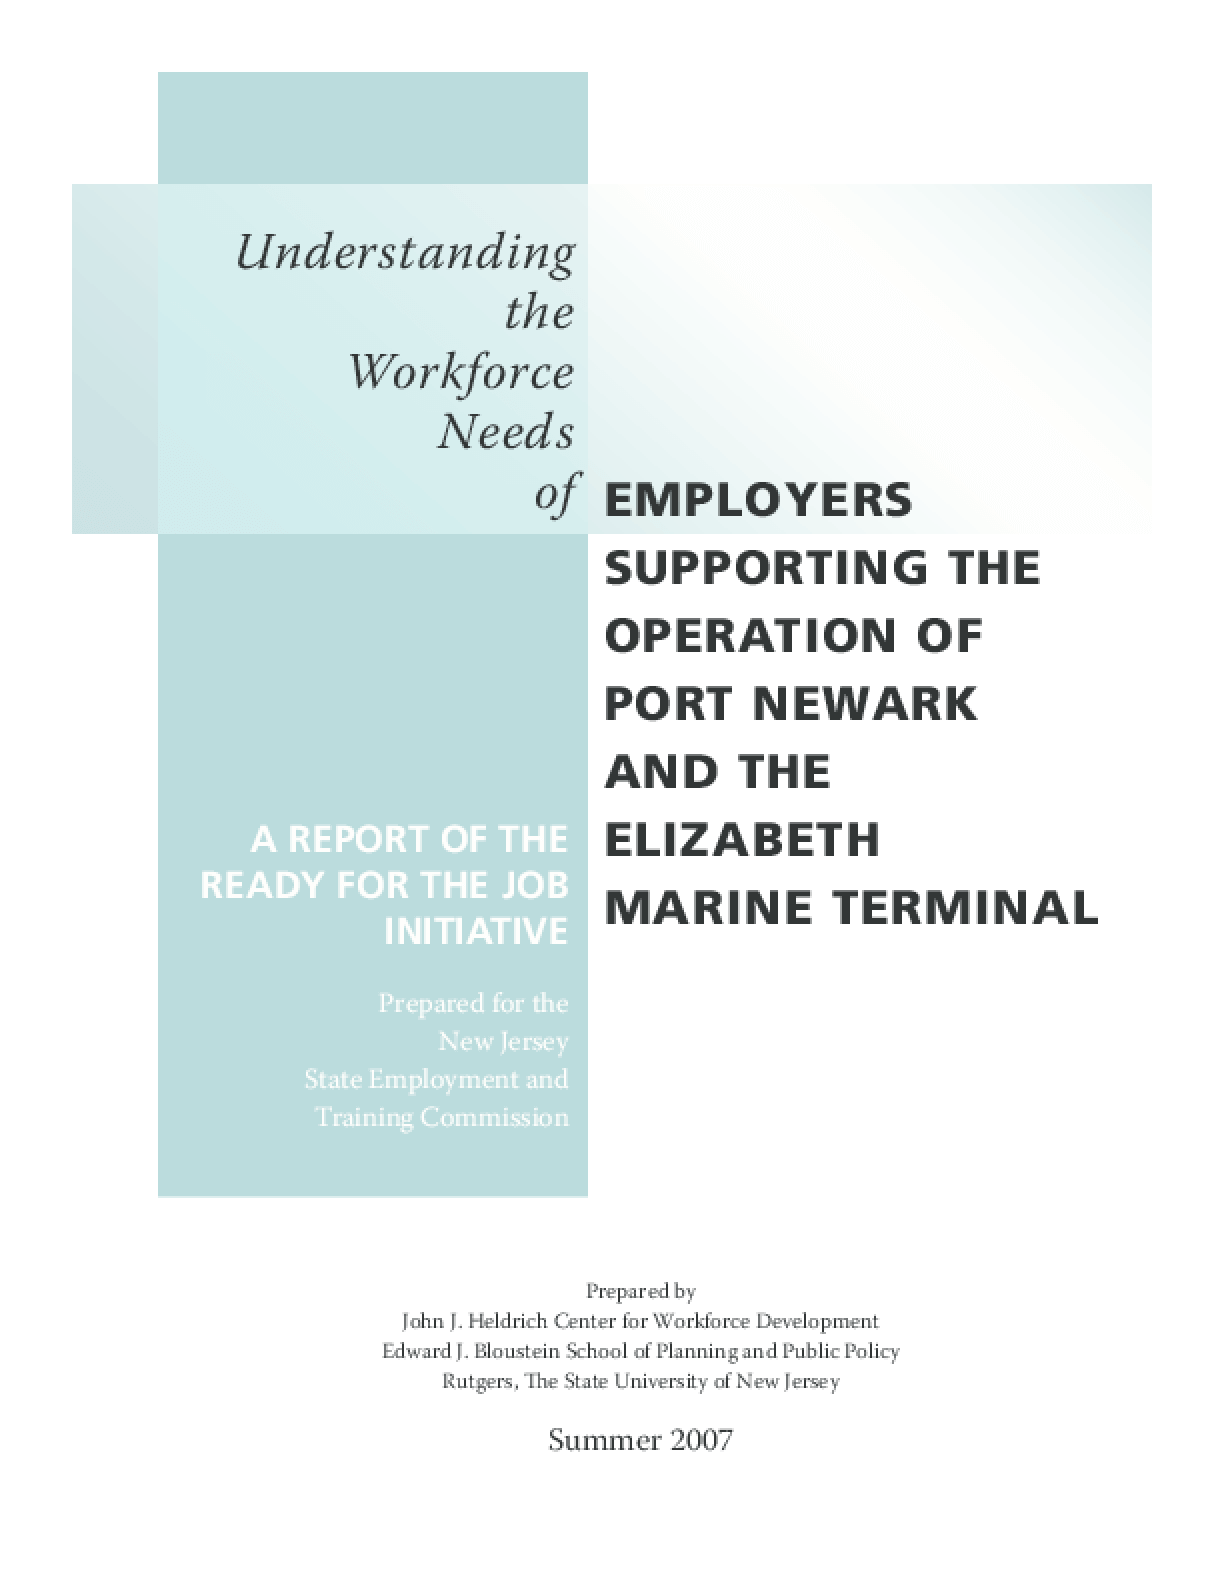 Understanding the Workforce Needs of Employers Supporting the Operation of Port Newark and the Elizabeth Marine Terminal